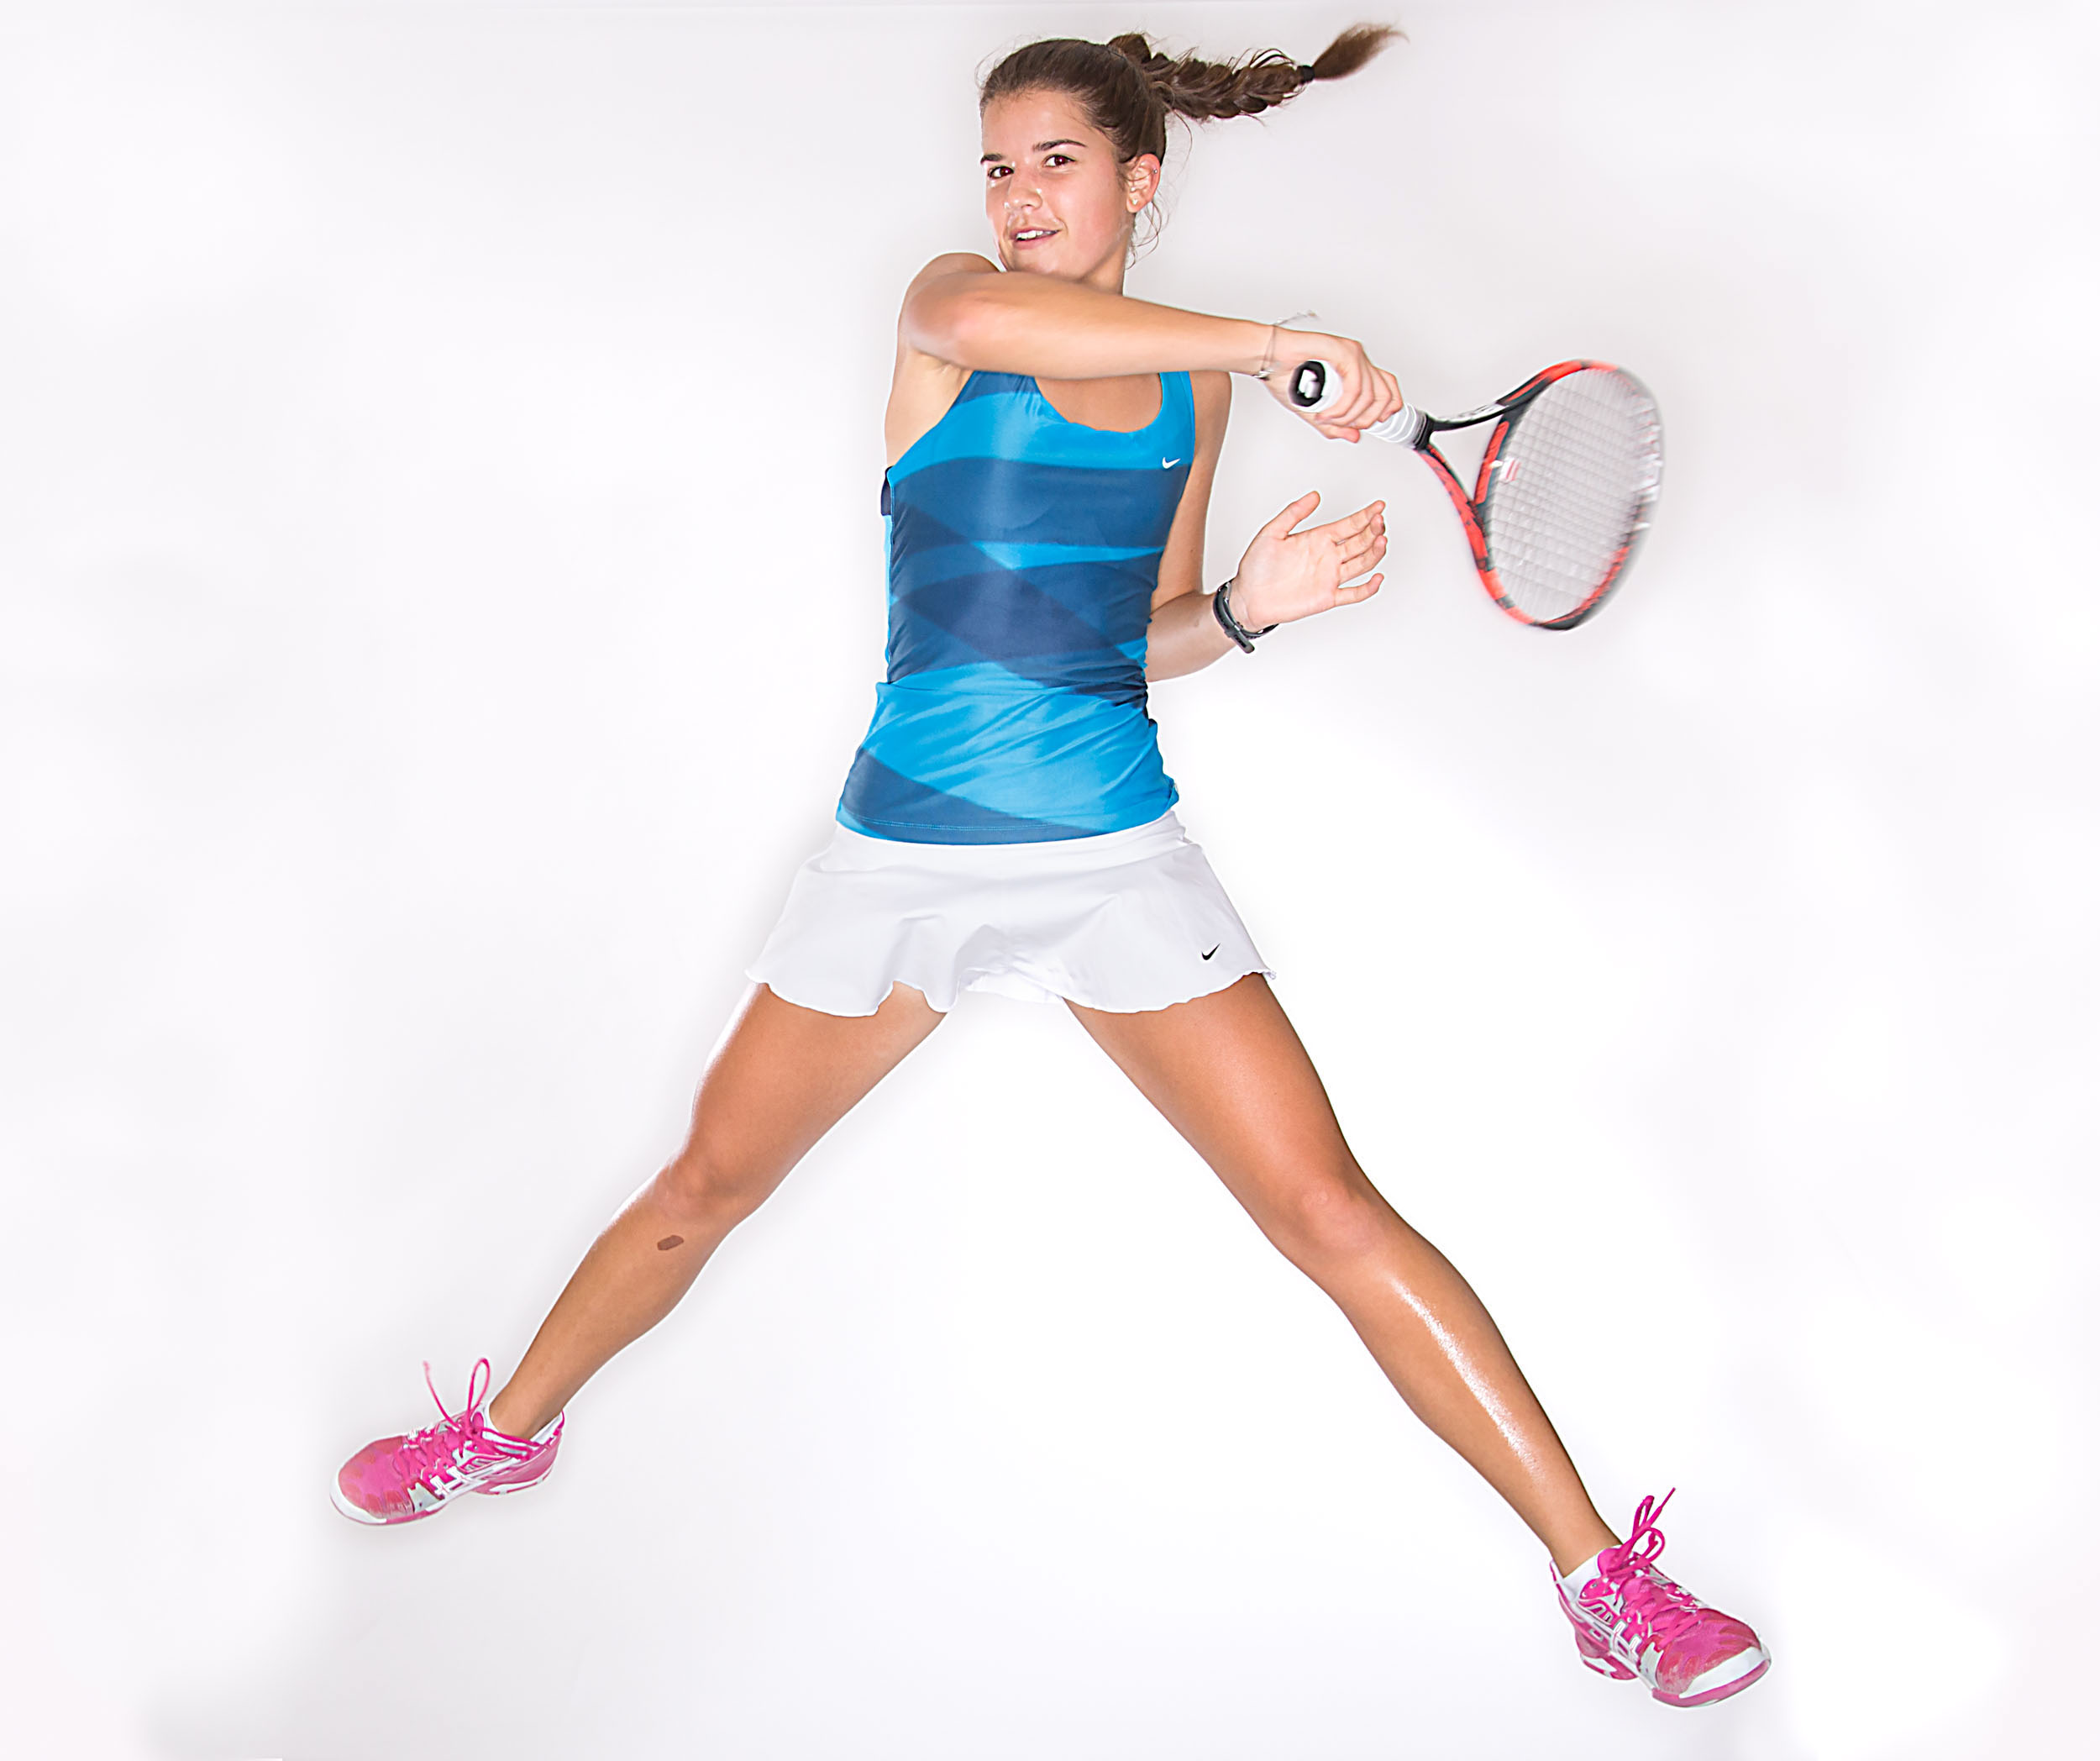 Studio action photo of girl playing tennis, magazine sports portrait